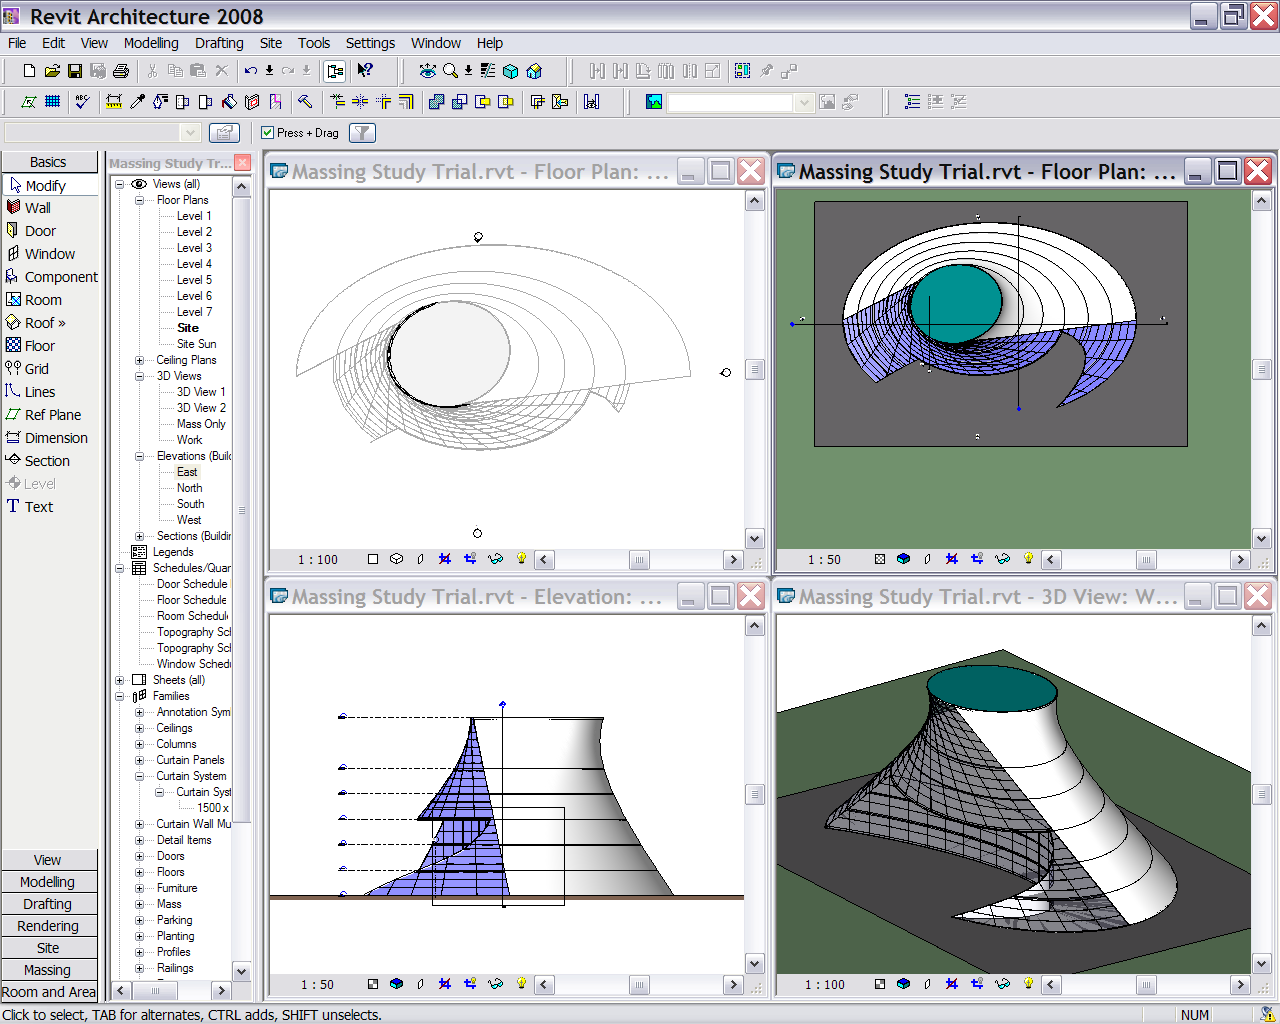 Revit and AutoCAD's Visual Styles - A SketchUp alternative? - RobiNZ